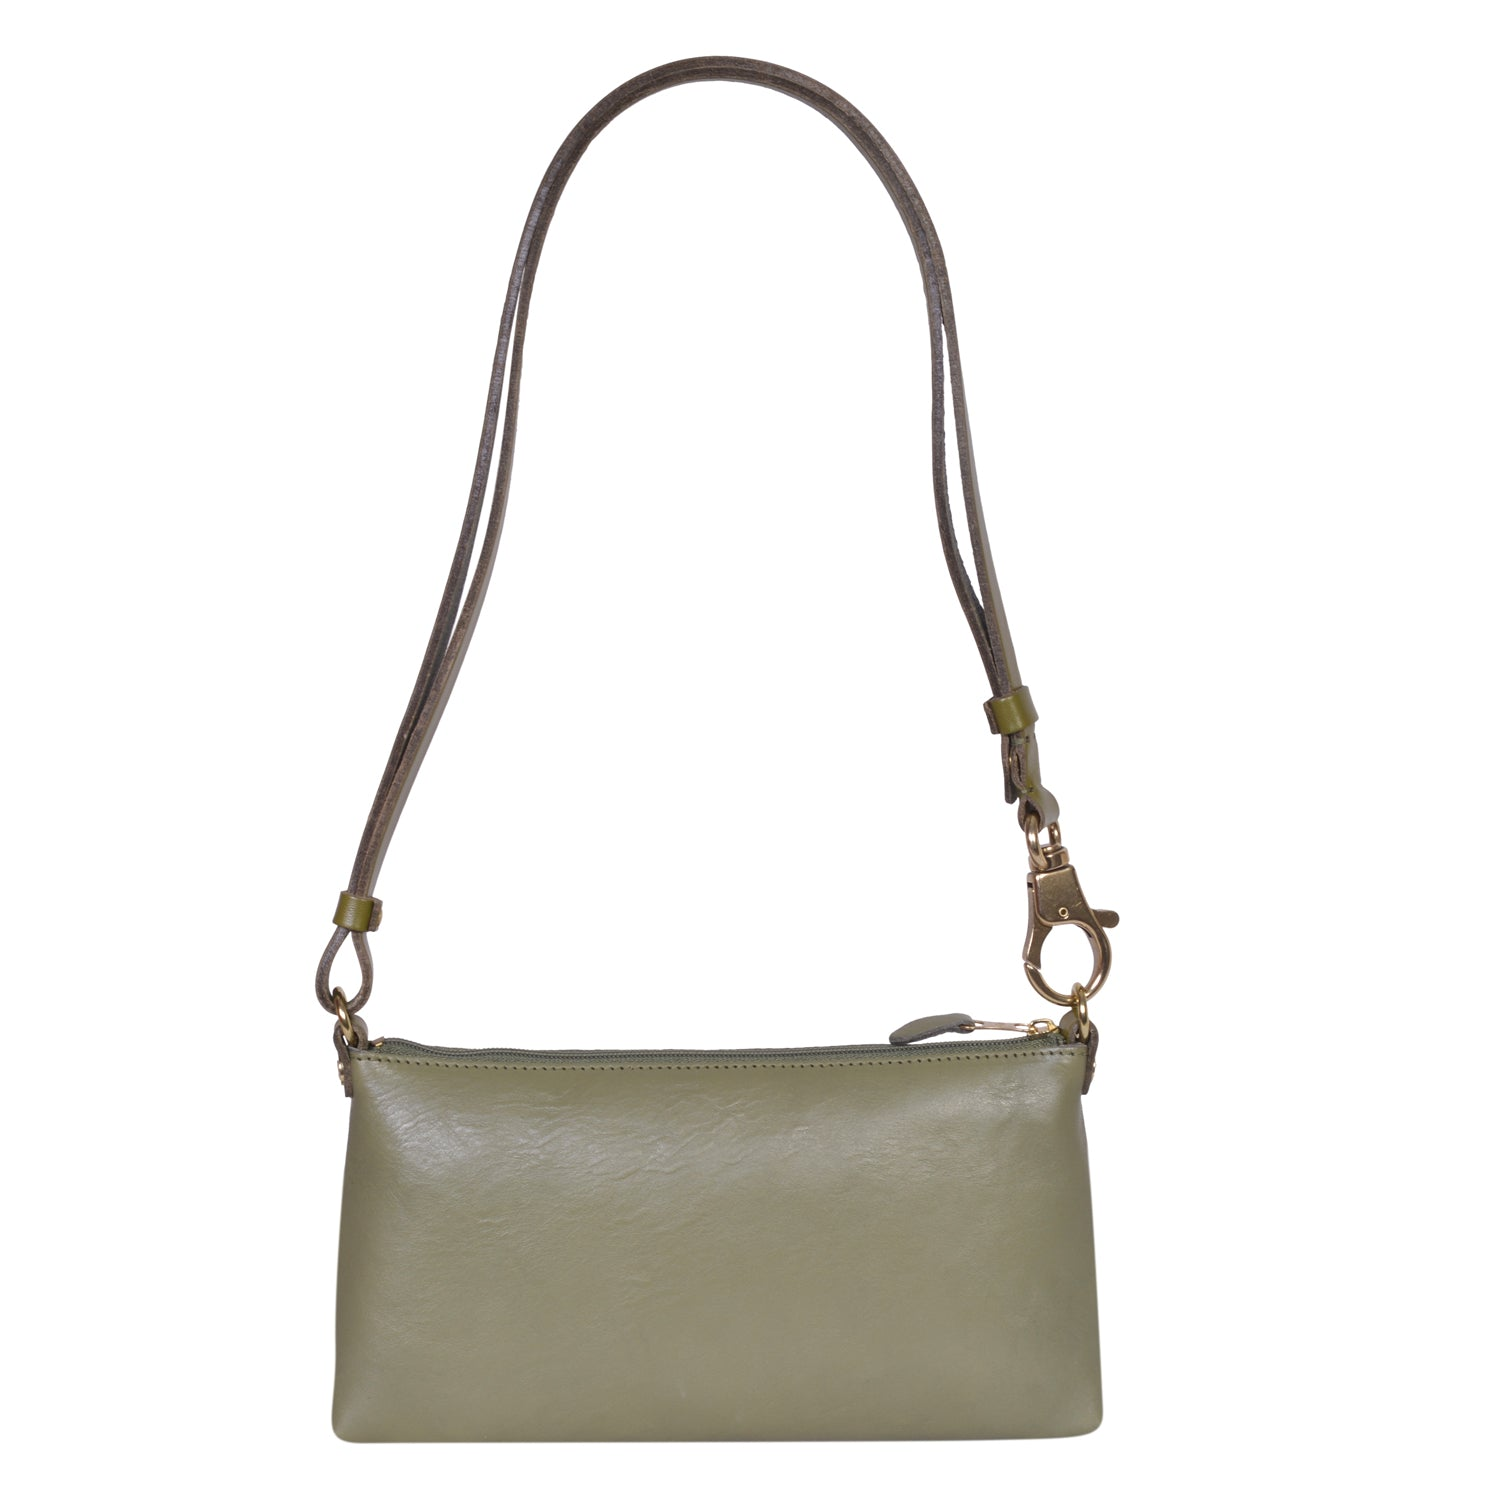 IL BISONTE LANDSCAPE WOMAN'S SIMPLE SHOULDER BAG IN OLIVE COWHIDE LEATHER